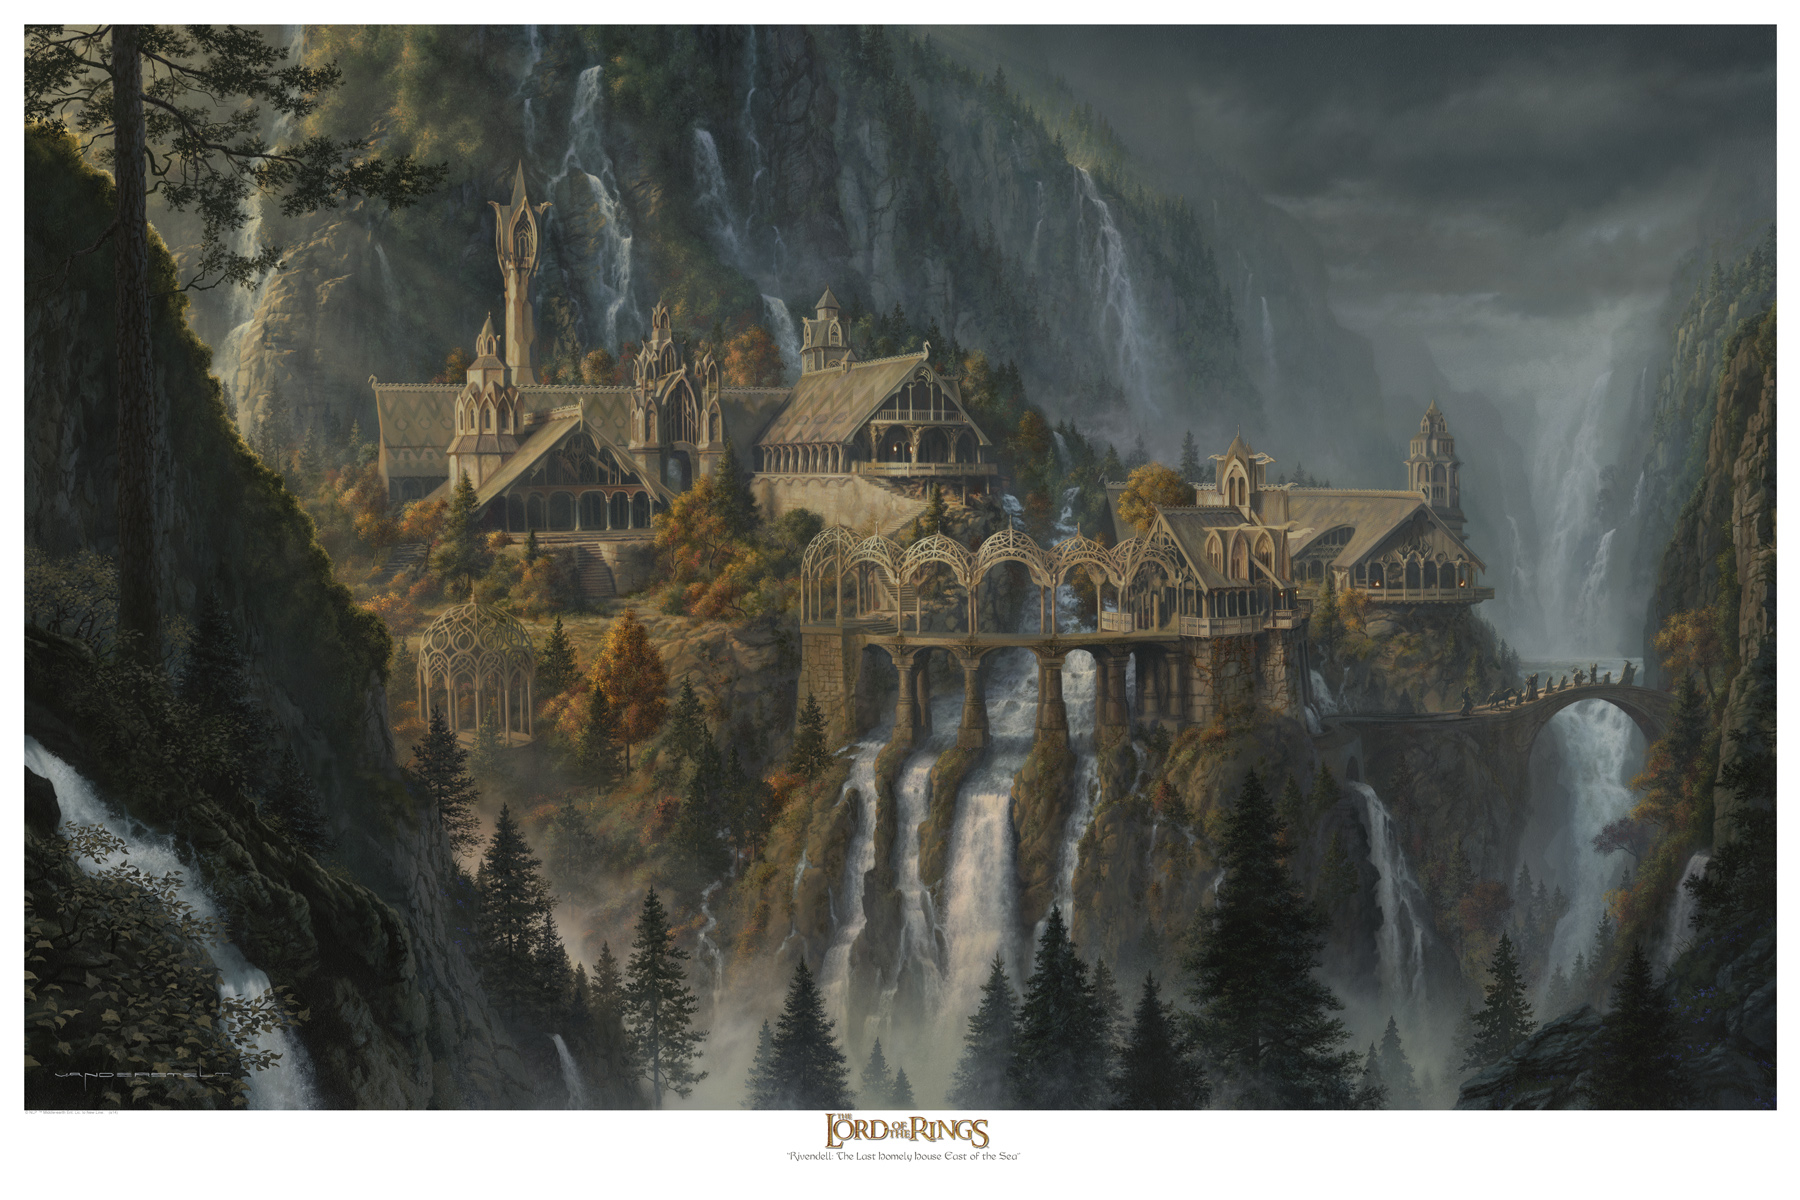 Poets Of The Fall Wallpaper Collecting The Precious Vanderstelt Studio Rivendell Art